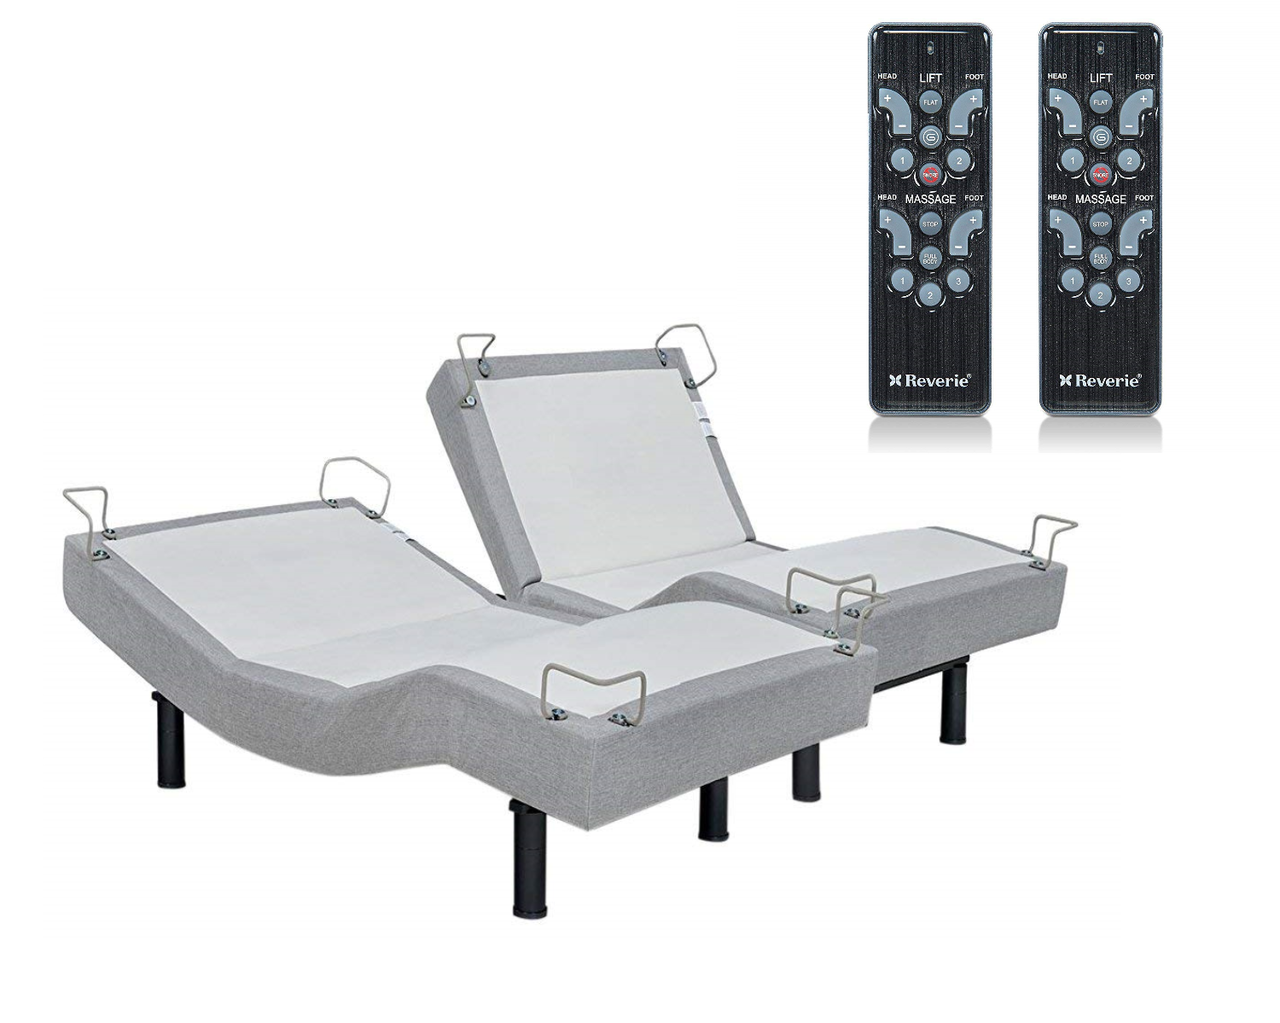 Reverie 3E Wireless Remote for Adjustable Bed